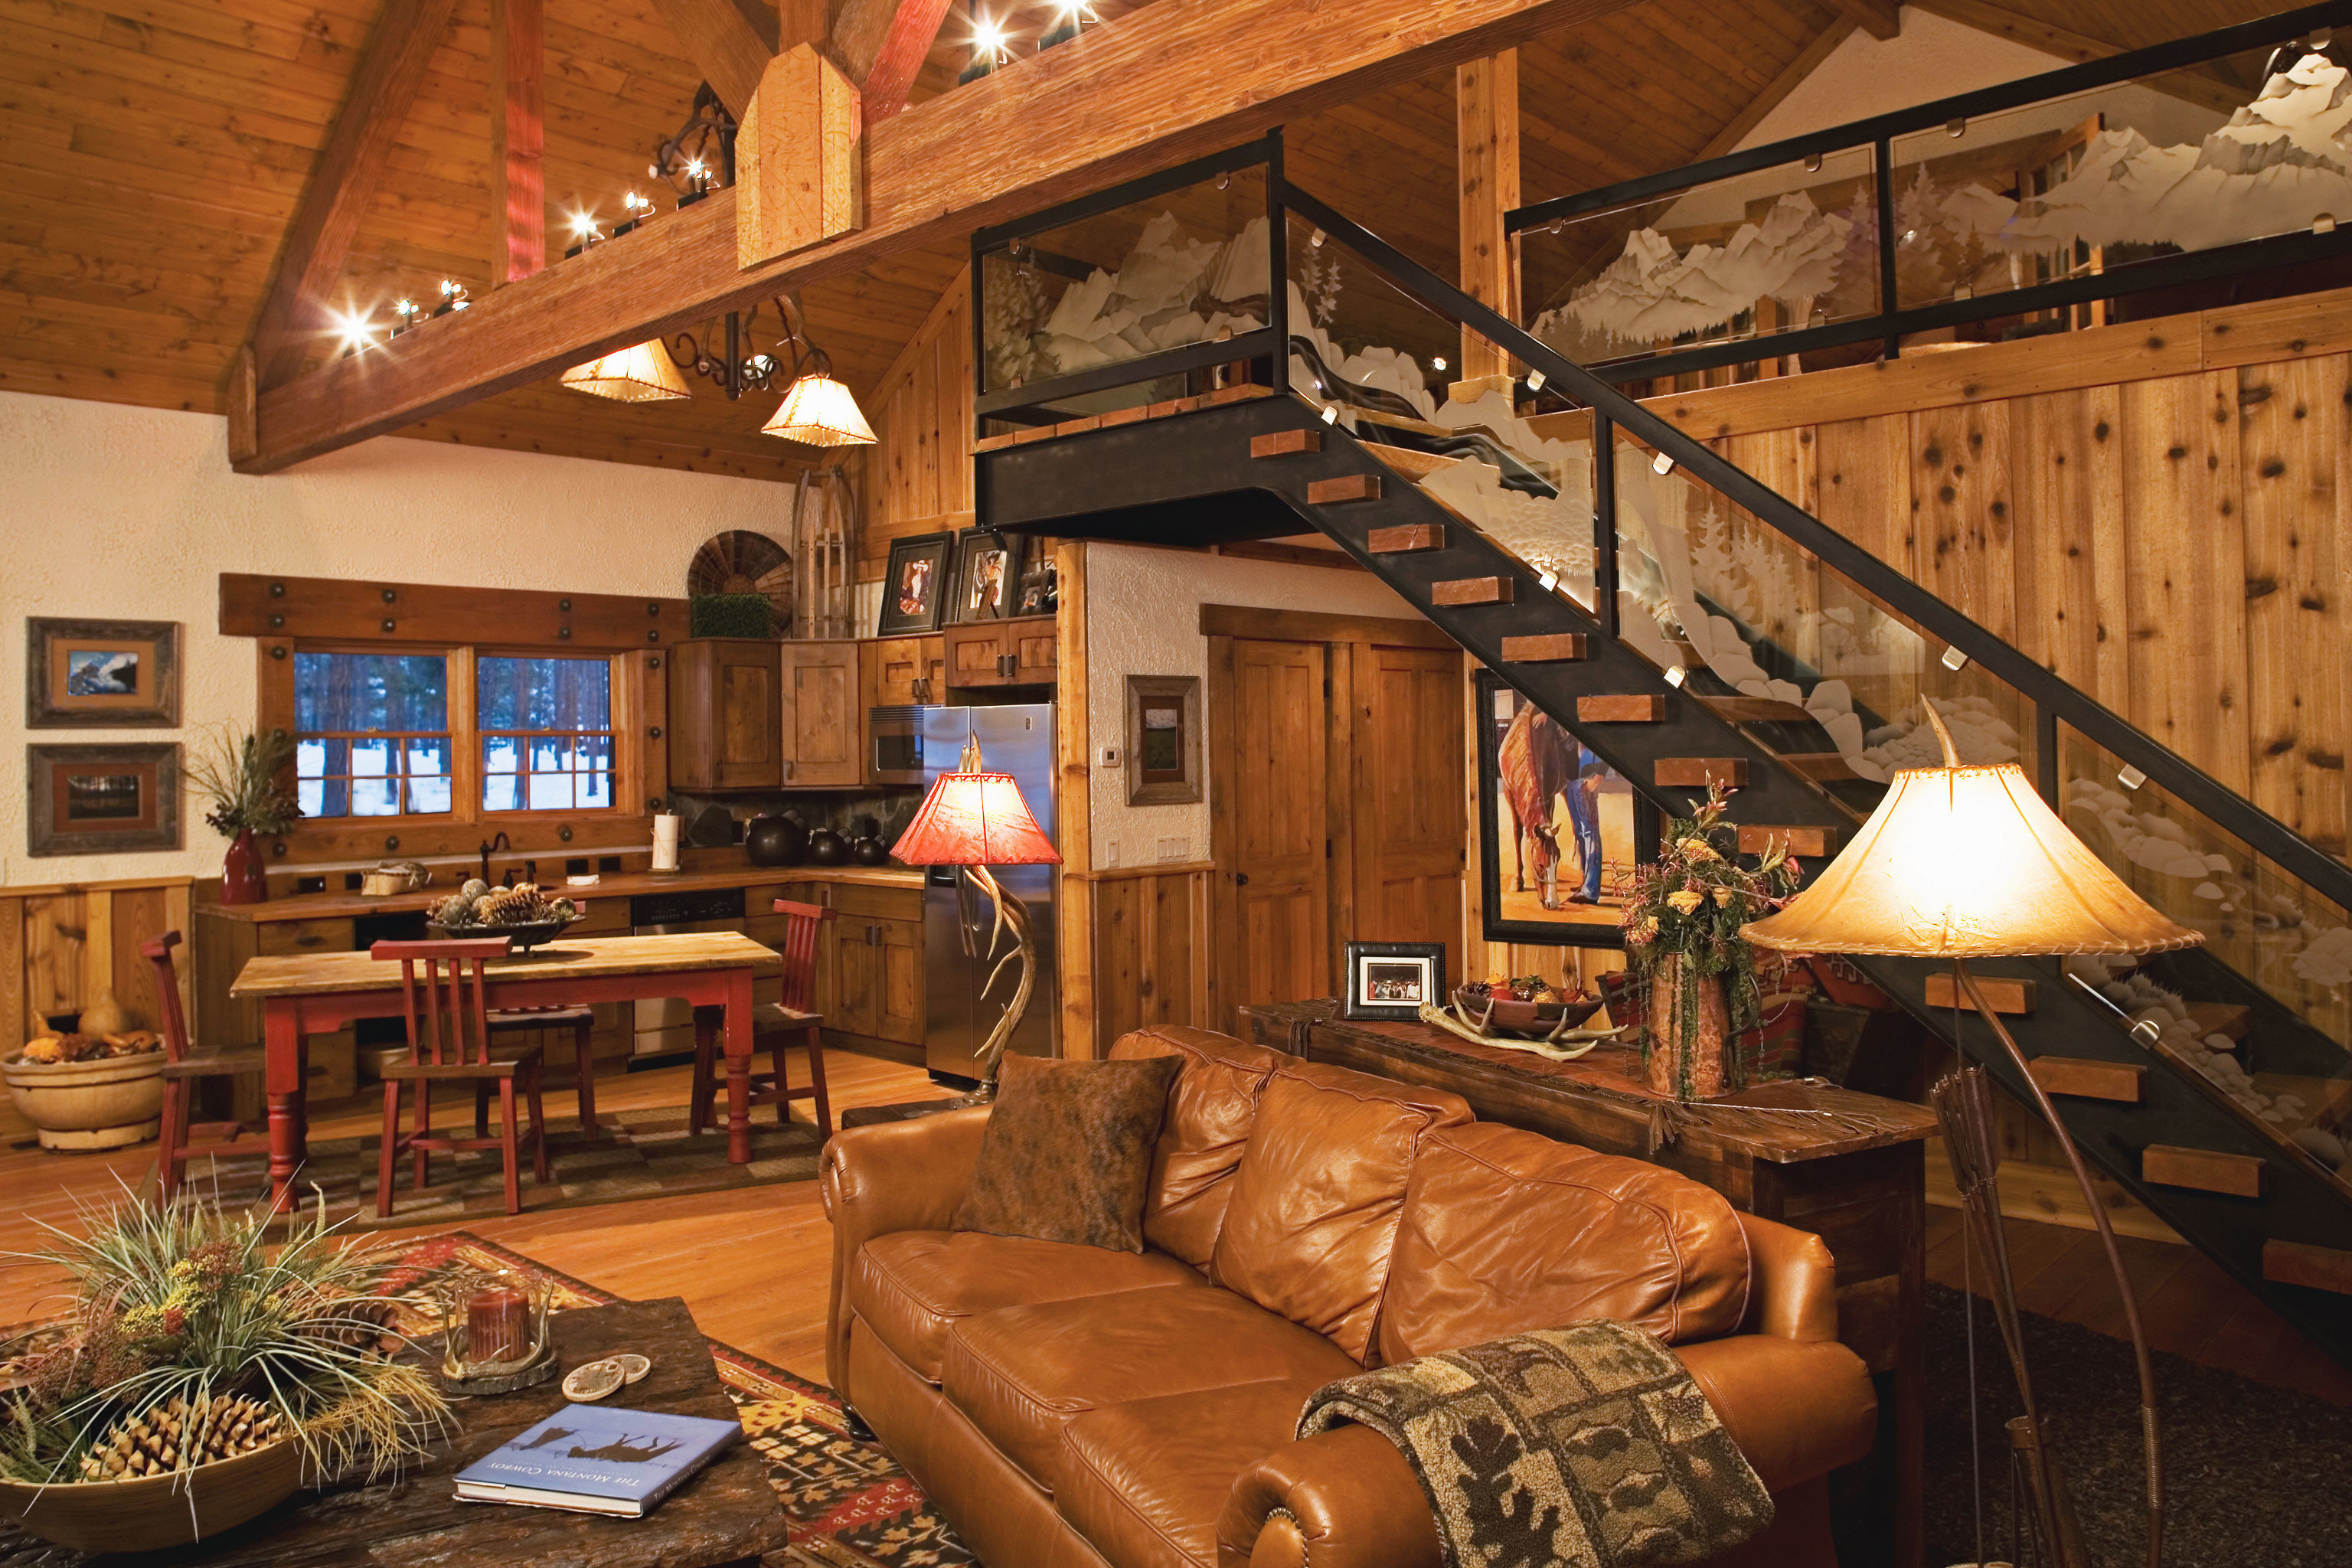 Country Glamping Living Lodge Ranch Rustic Secret Getaways Trip Ideas Winter indoor room floor property ceiling building log cabin estate living room home recreation room cottage interior design wood farmhouse furniture basement area